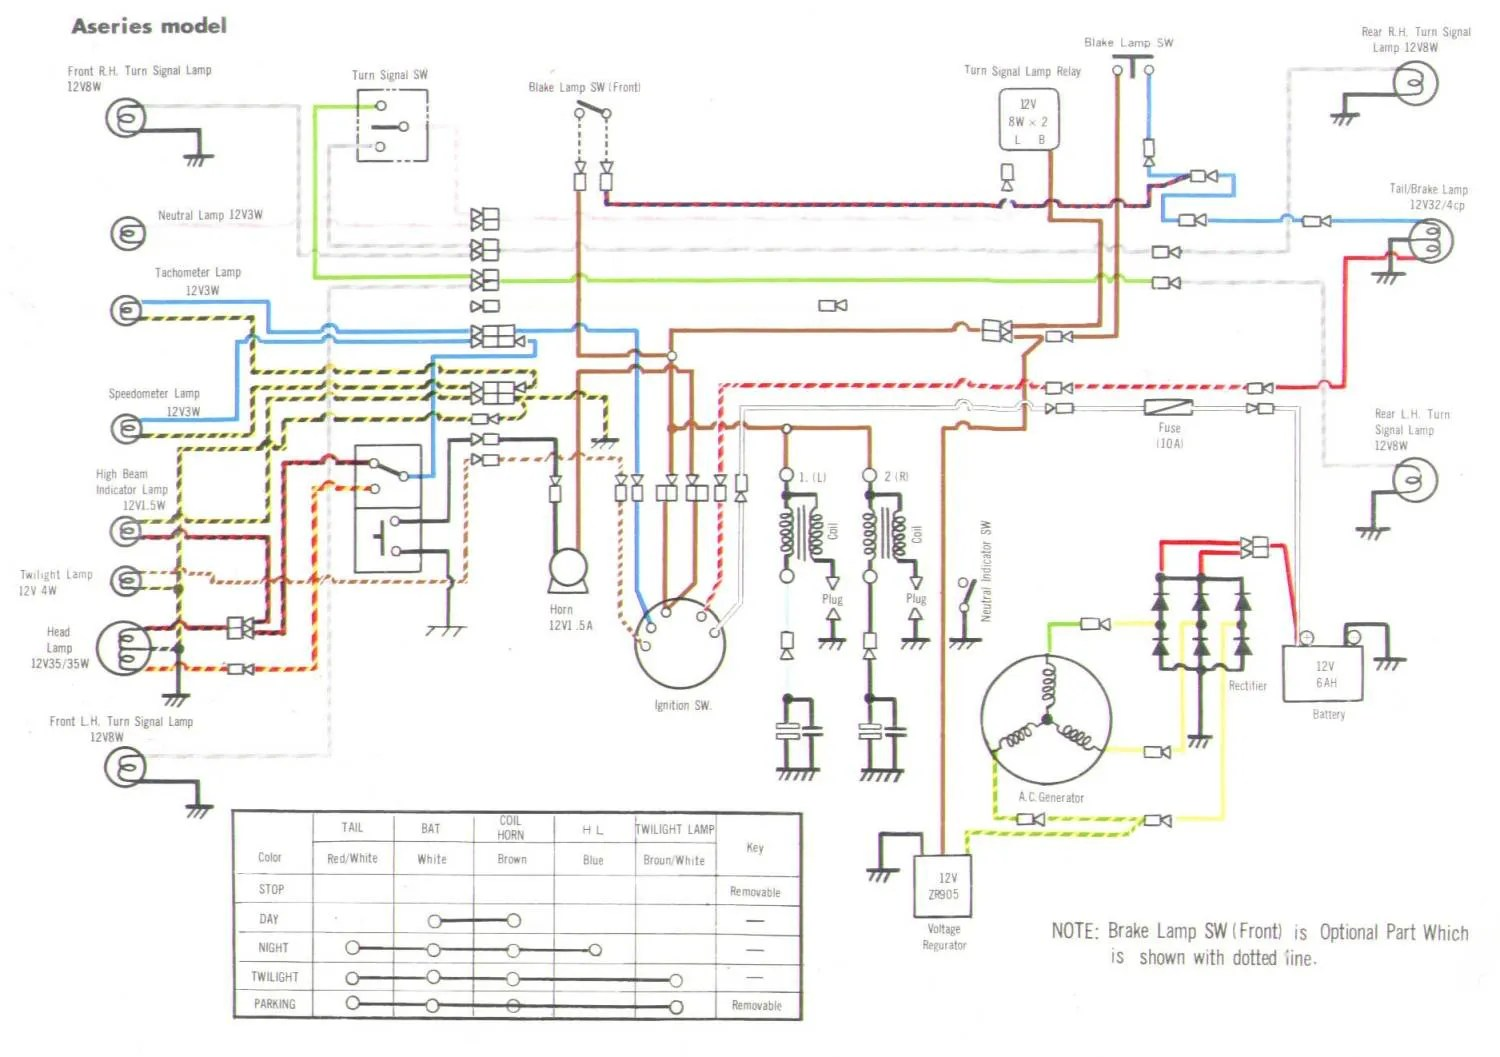 hight resolution of kawasaki h1d wiring diagram wiring diagram expert kawasaki h1d wiring diagram